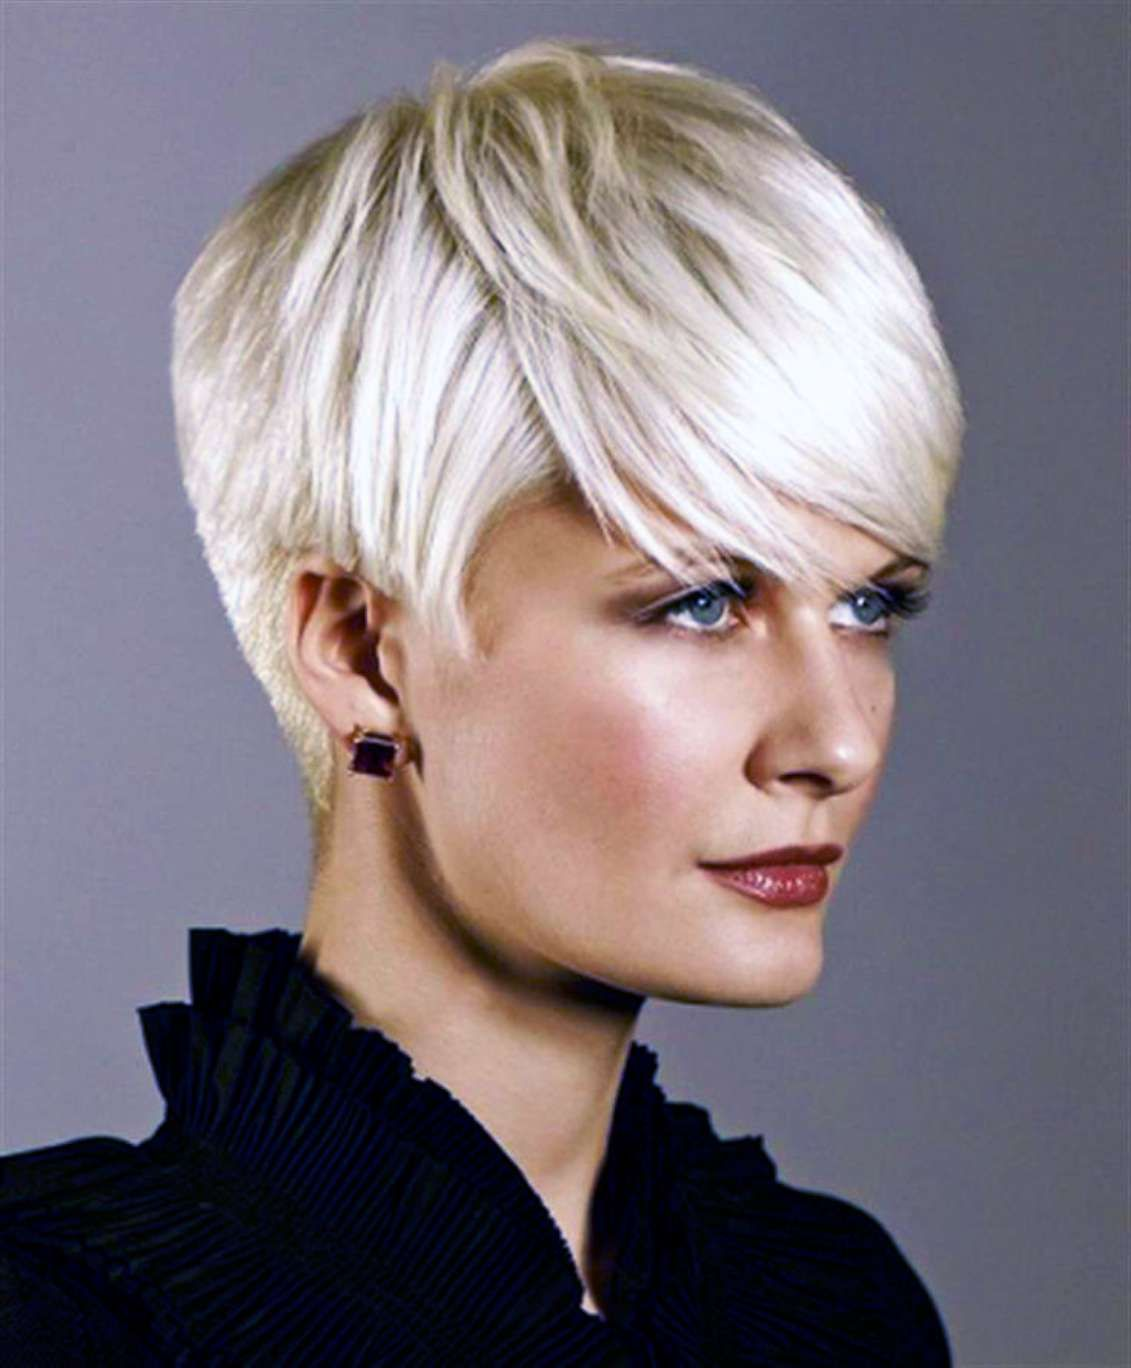 Awesome 1000 Images About Hair Styling On Pinterest Short Hairstyles Short Hairstyles Gunalazisus